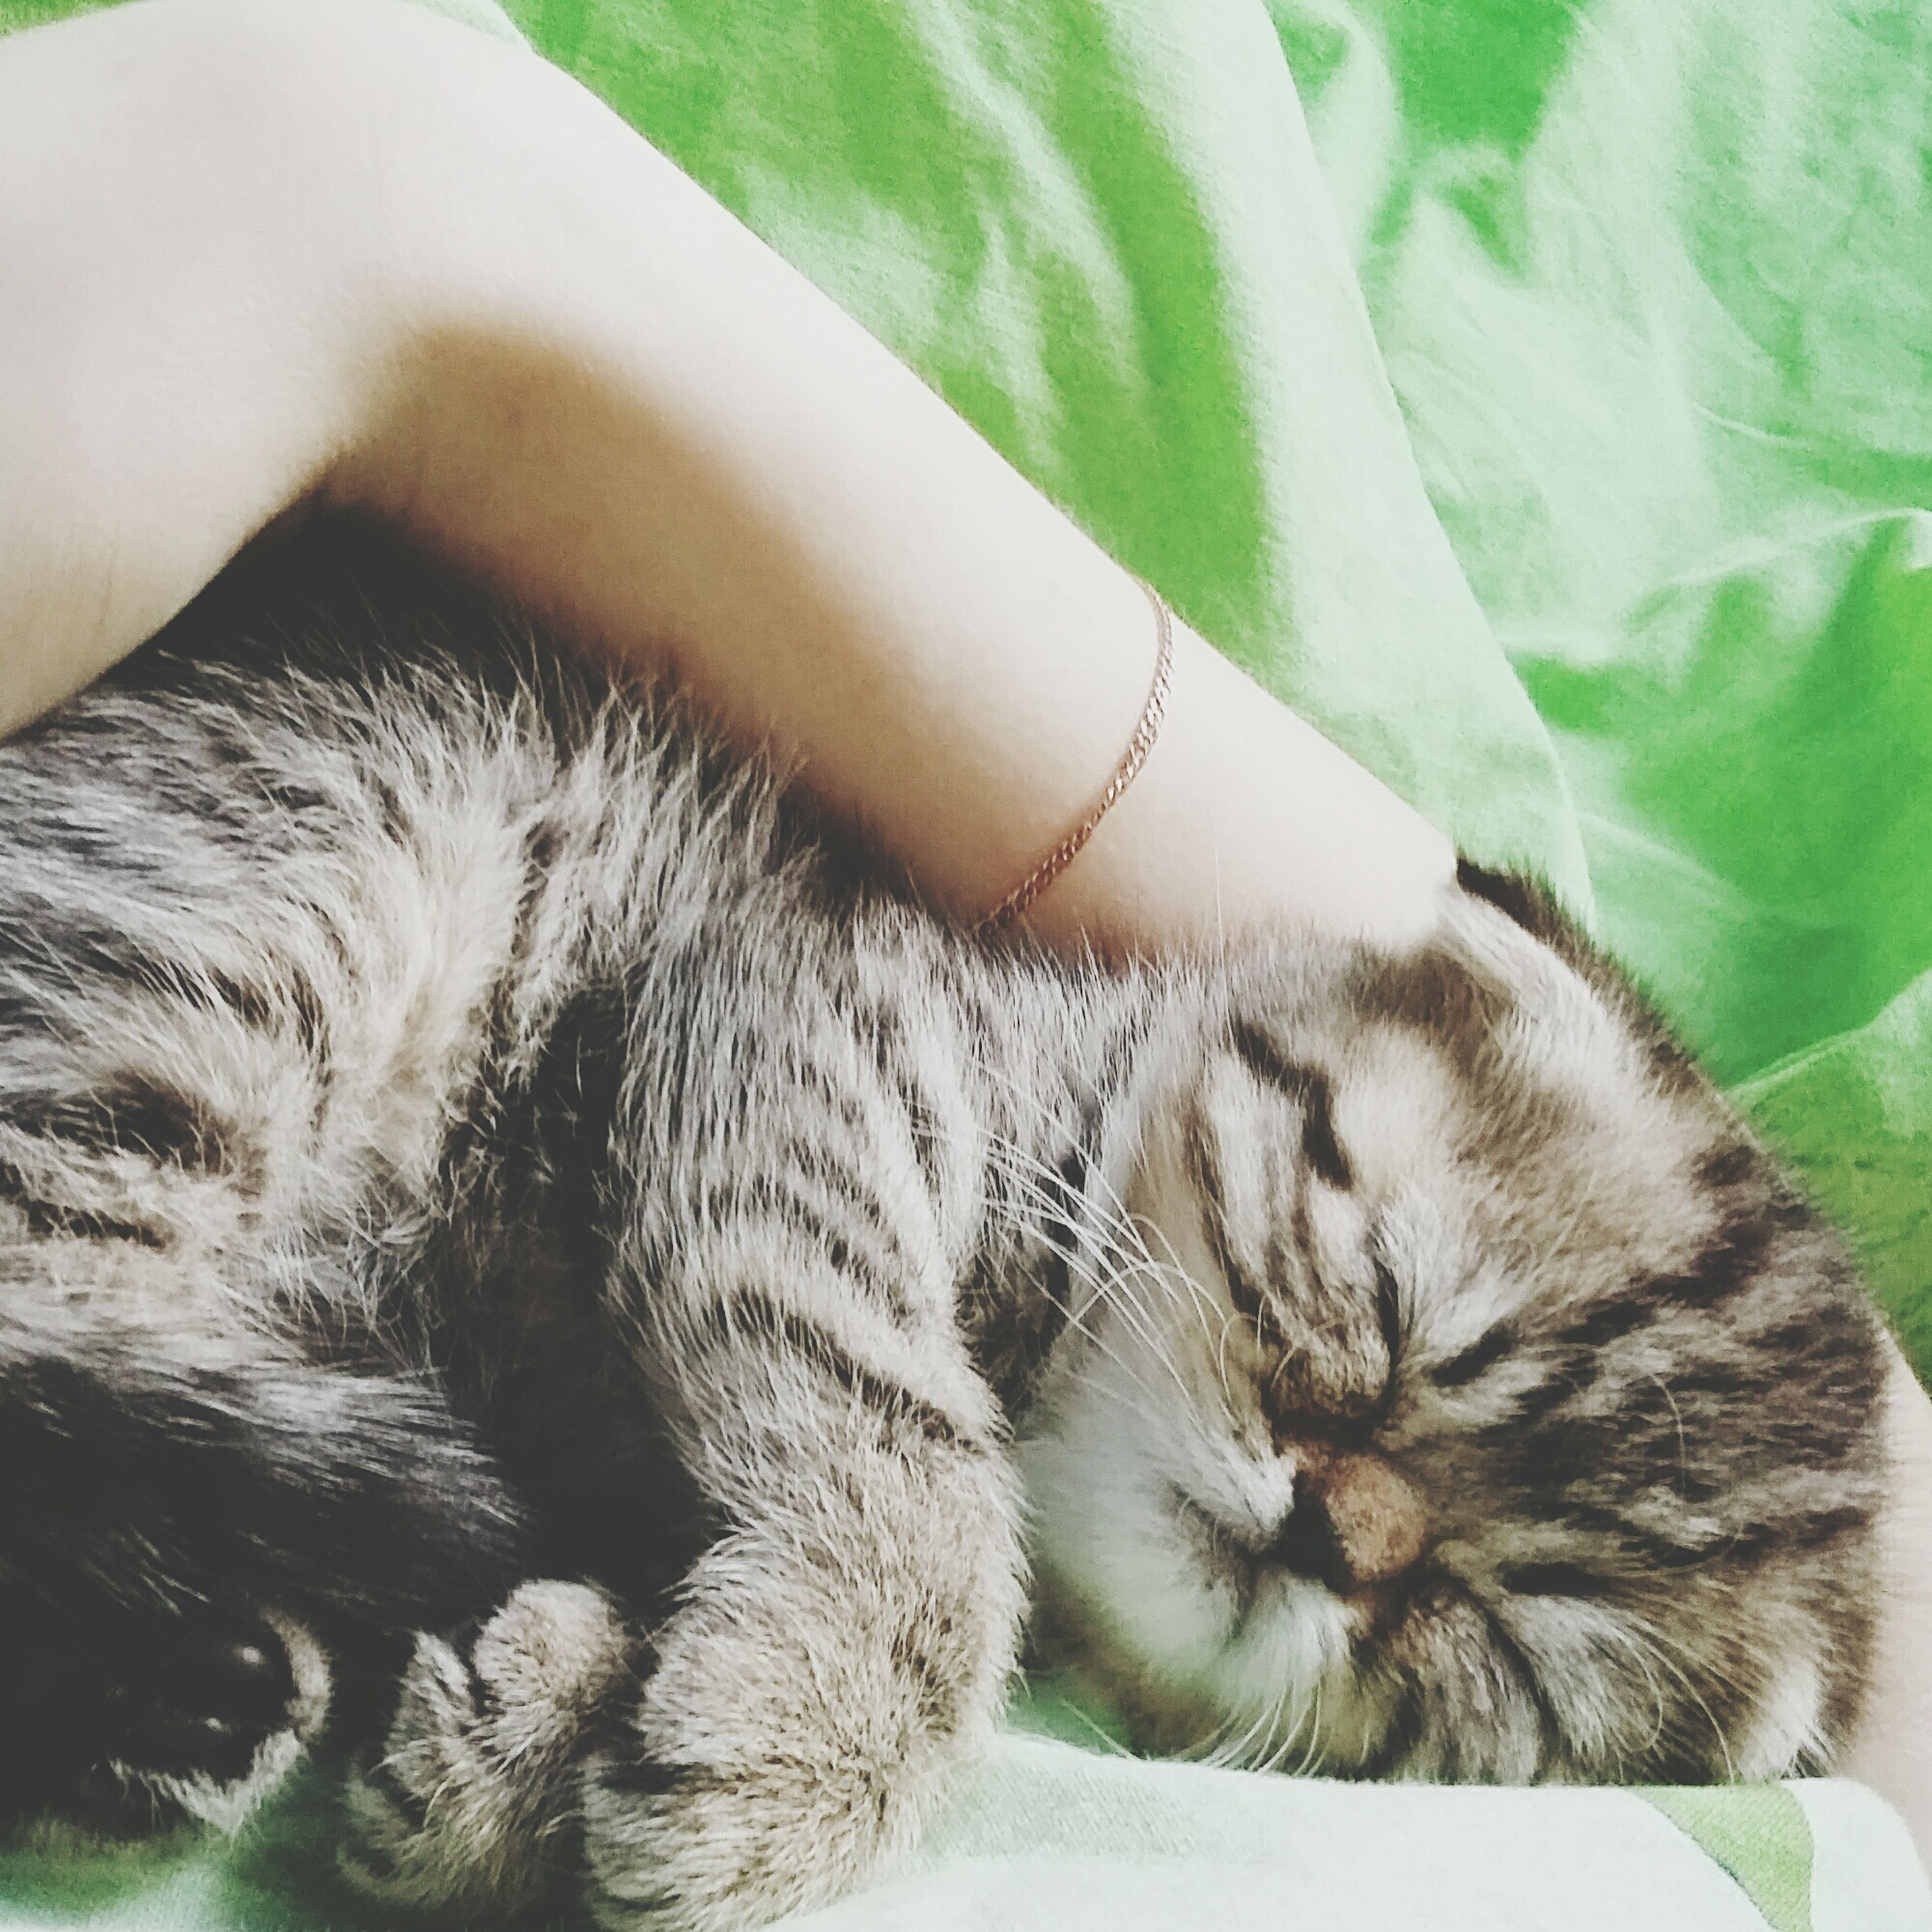 pets, domestic cat, animal themes, domestic animals, mammal, one animal, cat, feline, relaxation, indoors, sleeping, lying down, resting, whisker, close-up, eyes closed, part of, bed, animal head, young animal